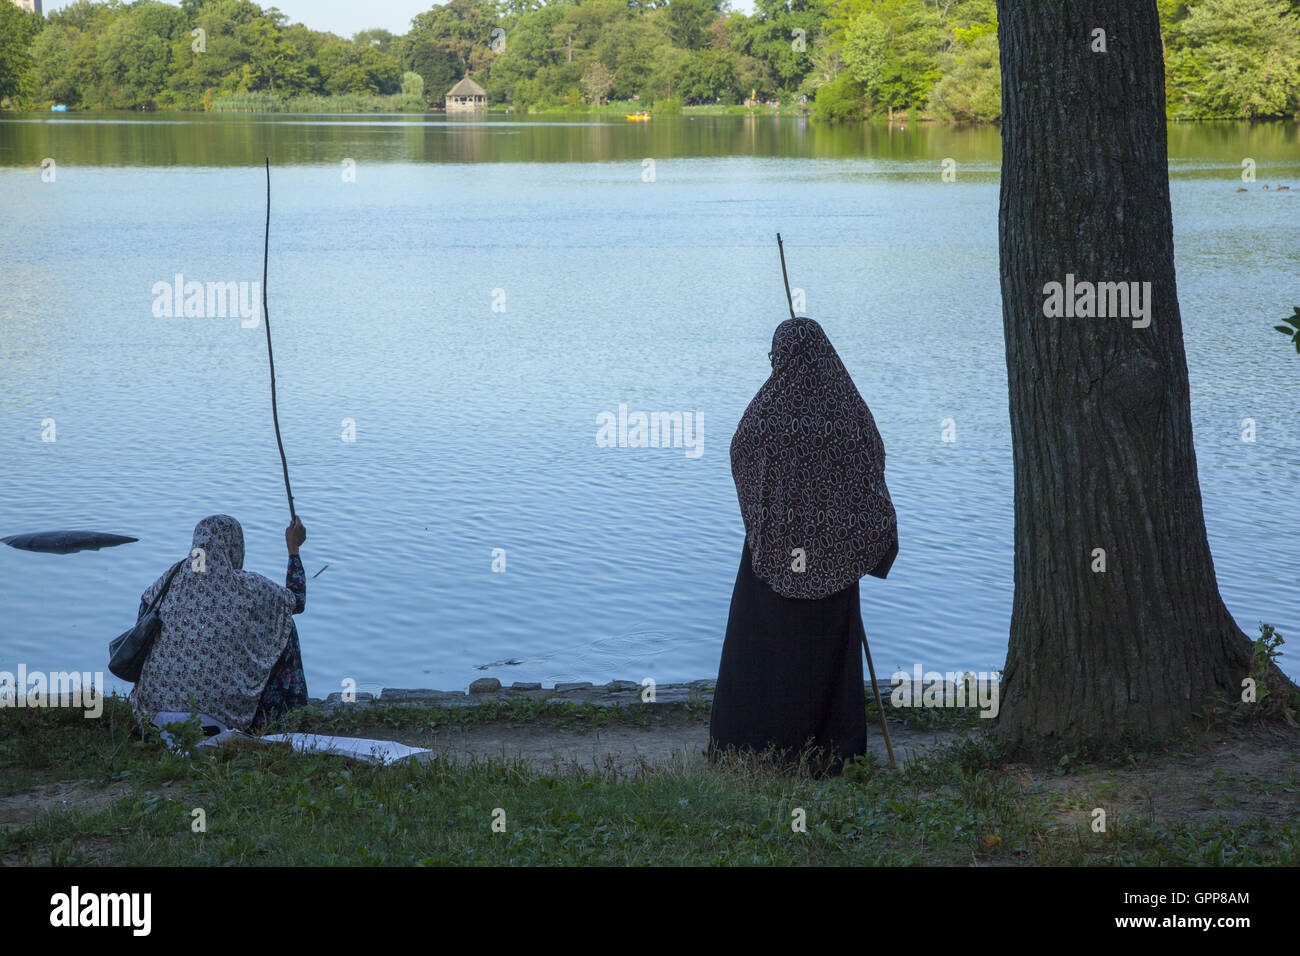 Immigrant Muslim women fish in the lake at Prospect Park, Brooklyn, NY. - Stock Image